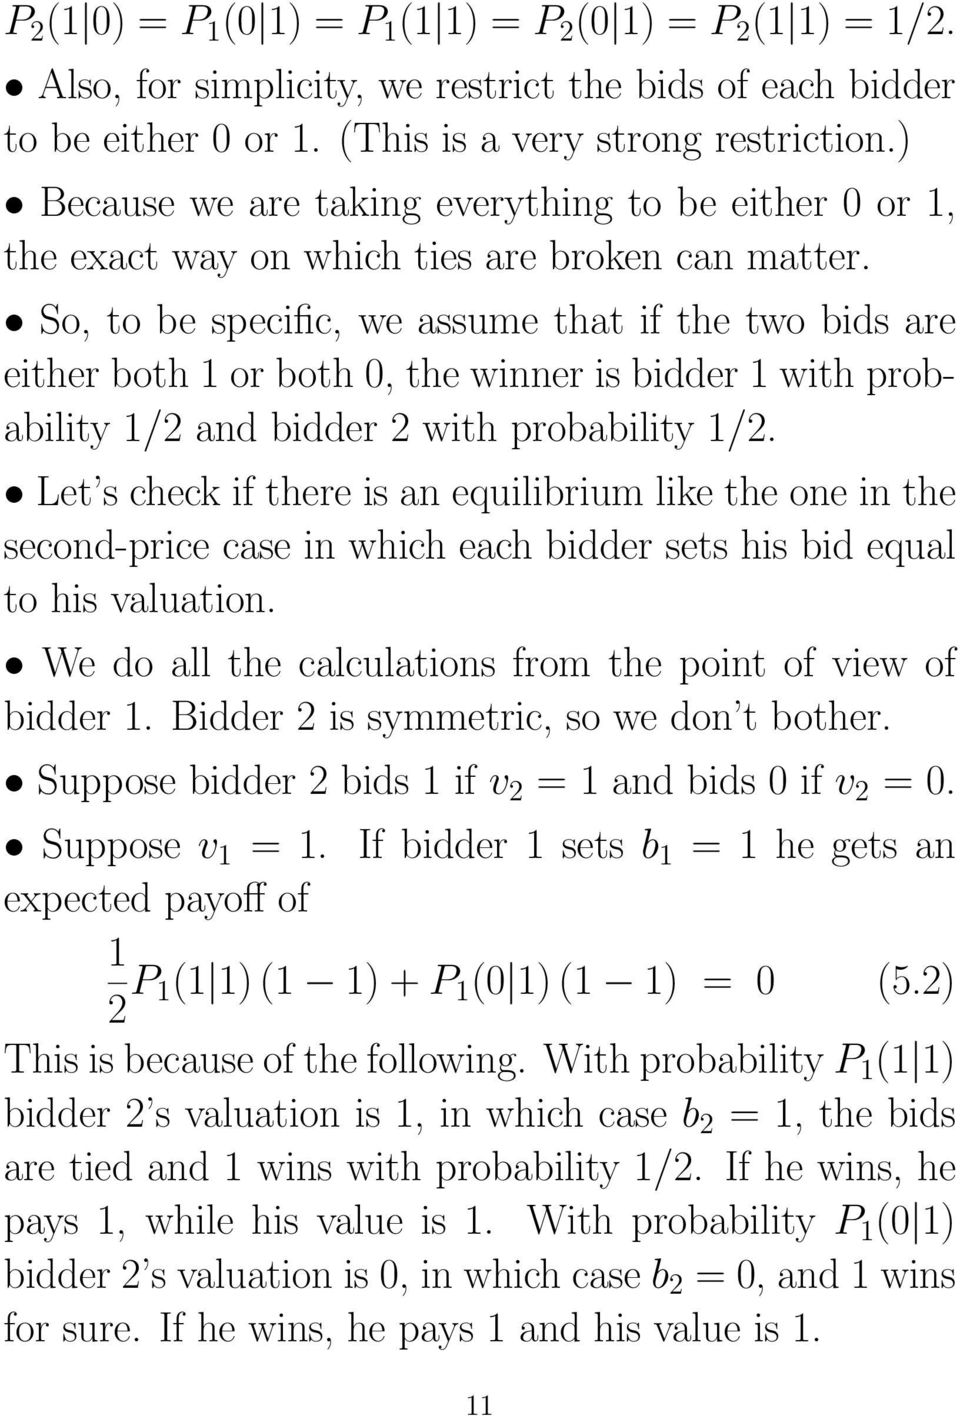 So, to be specific, we assume that if the two bids are either both 1 or both 0, the winner is bidder 1 with probability 1/2 and bidder 2 with probability 1/2.